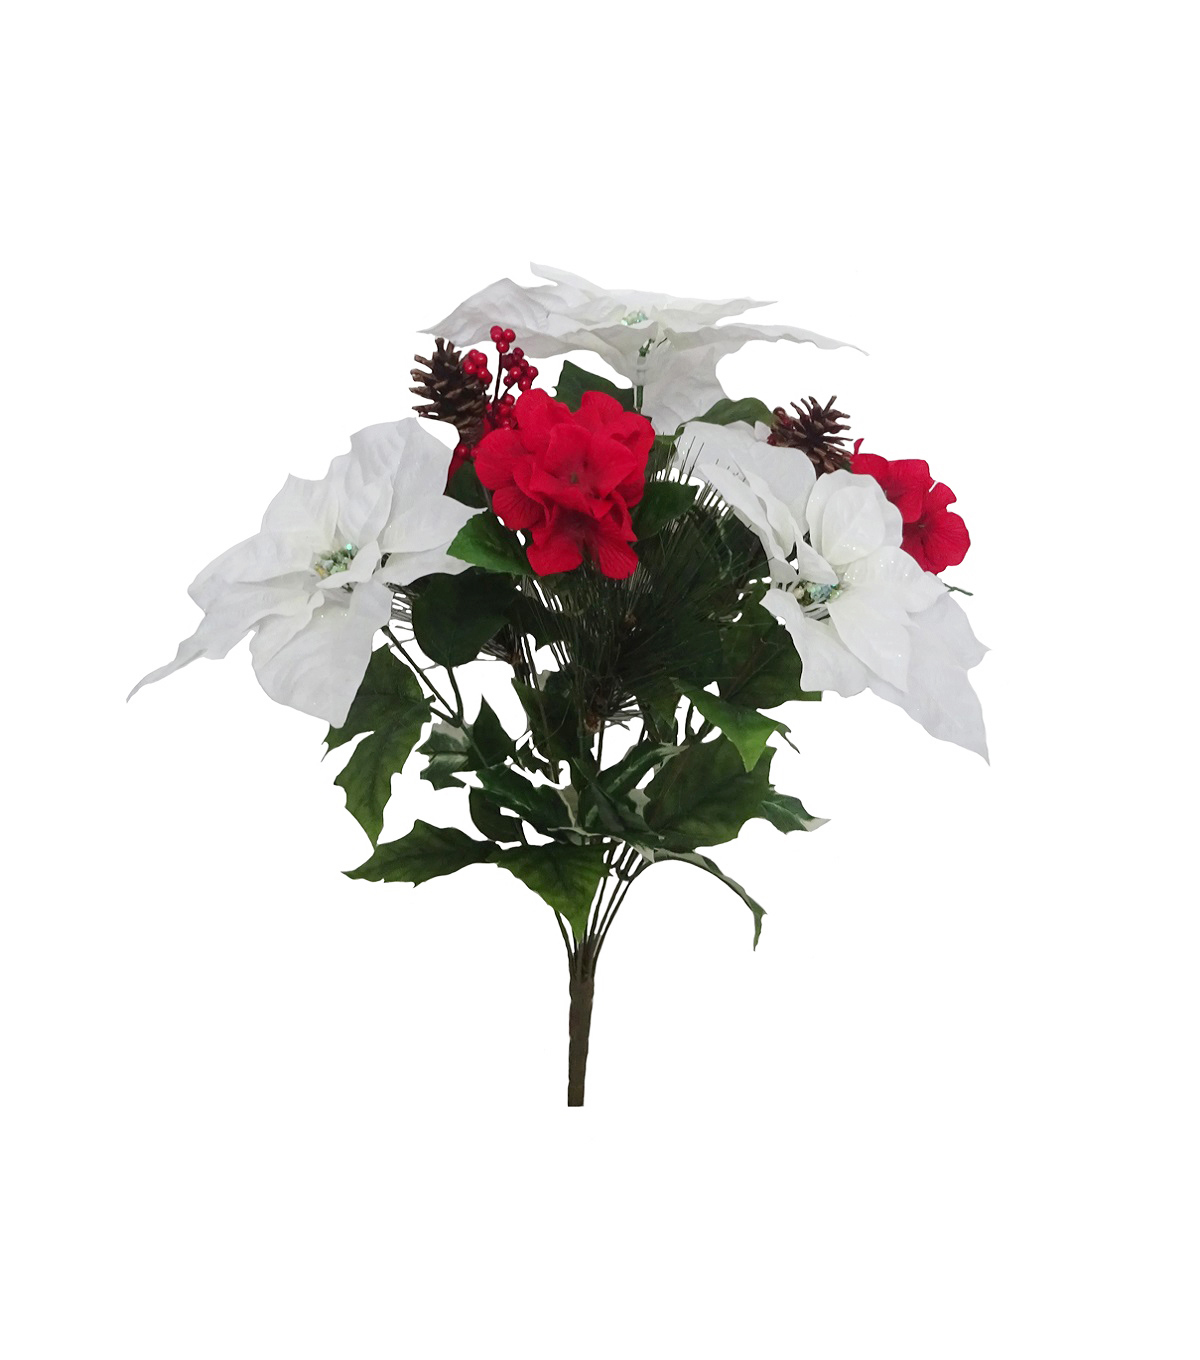 Handmade Holiday Christmas Poinsettia & Hydrangea Bush-White & Red